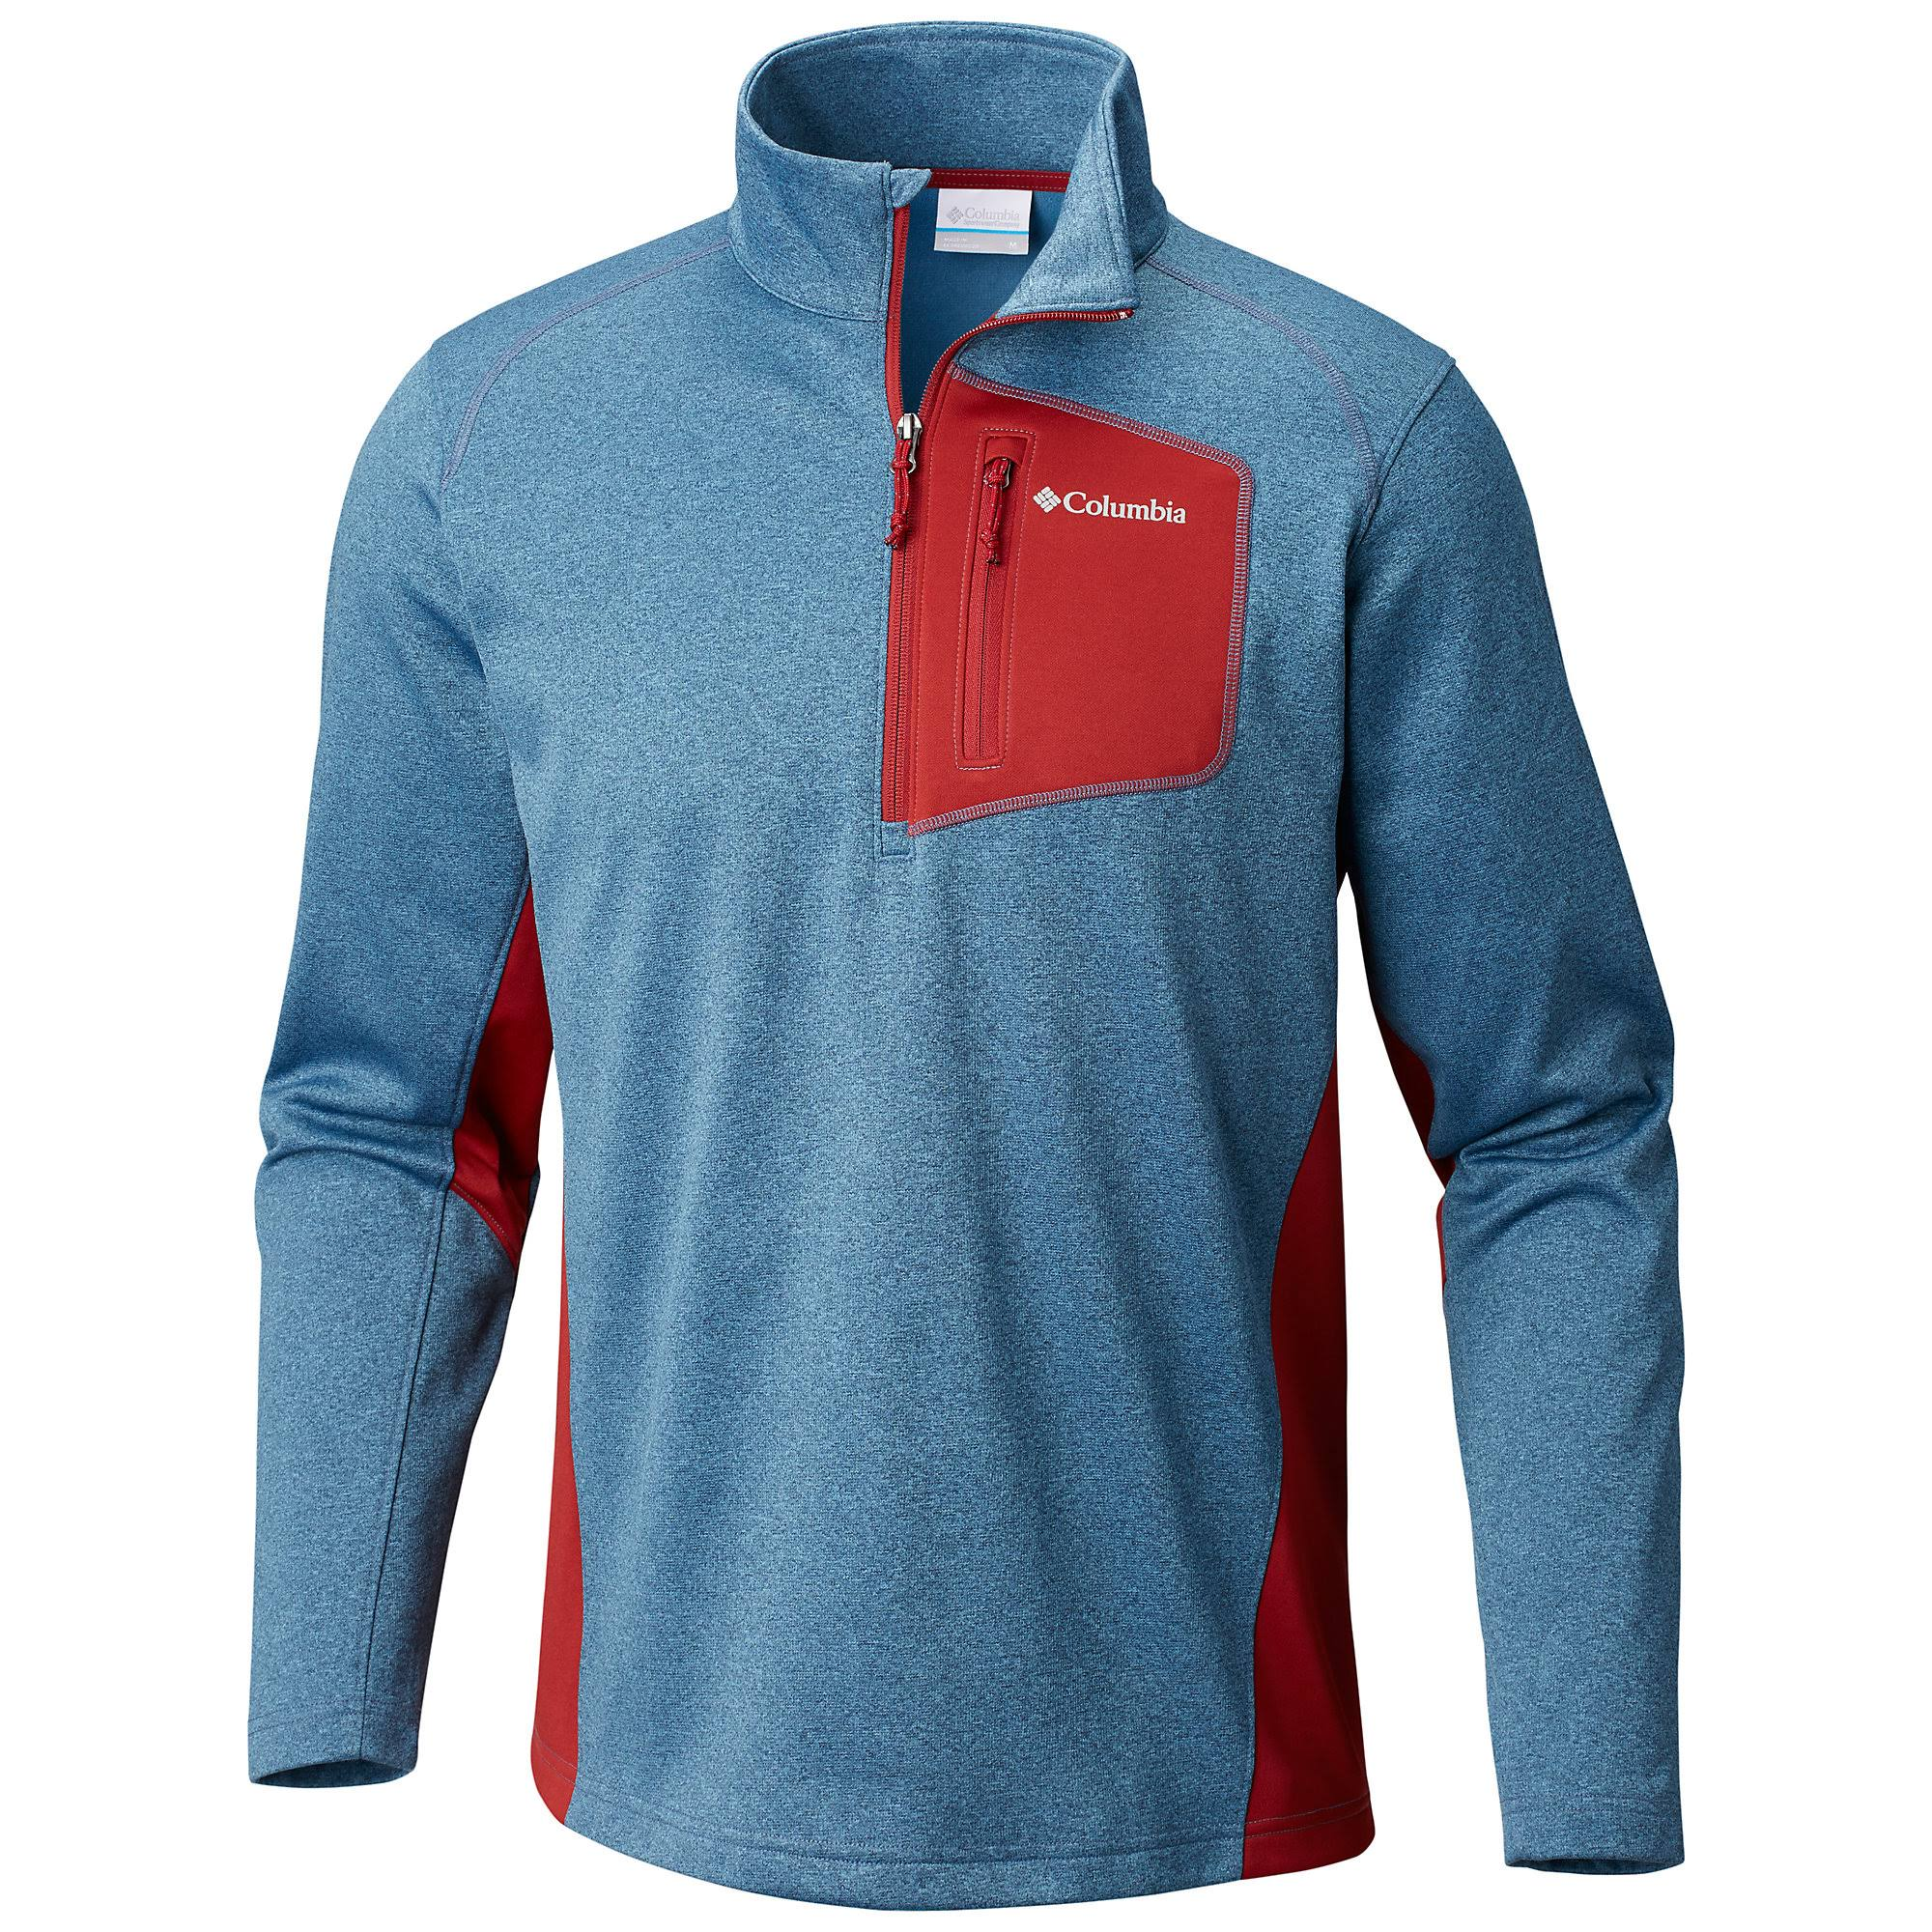 Columbia Jackson Creek Half Zip - S - Dark Mtn Heather/Red Element